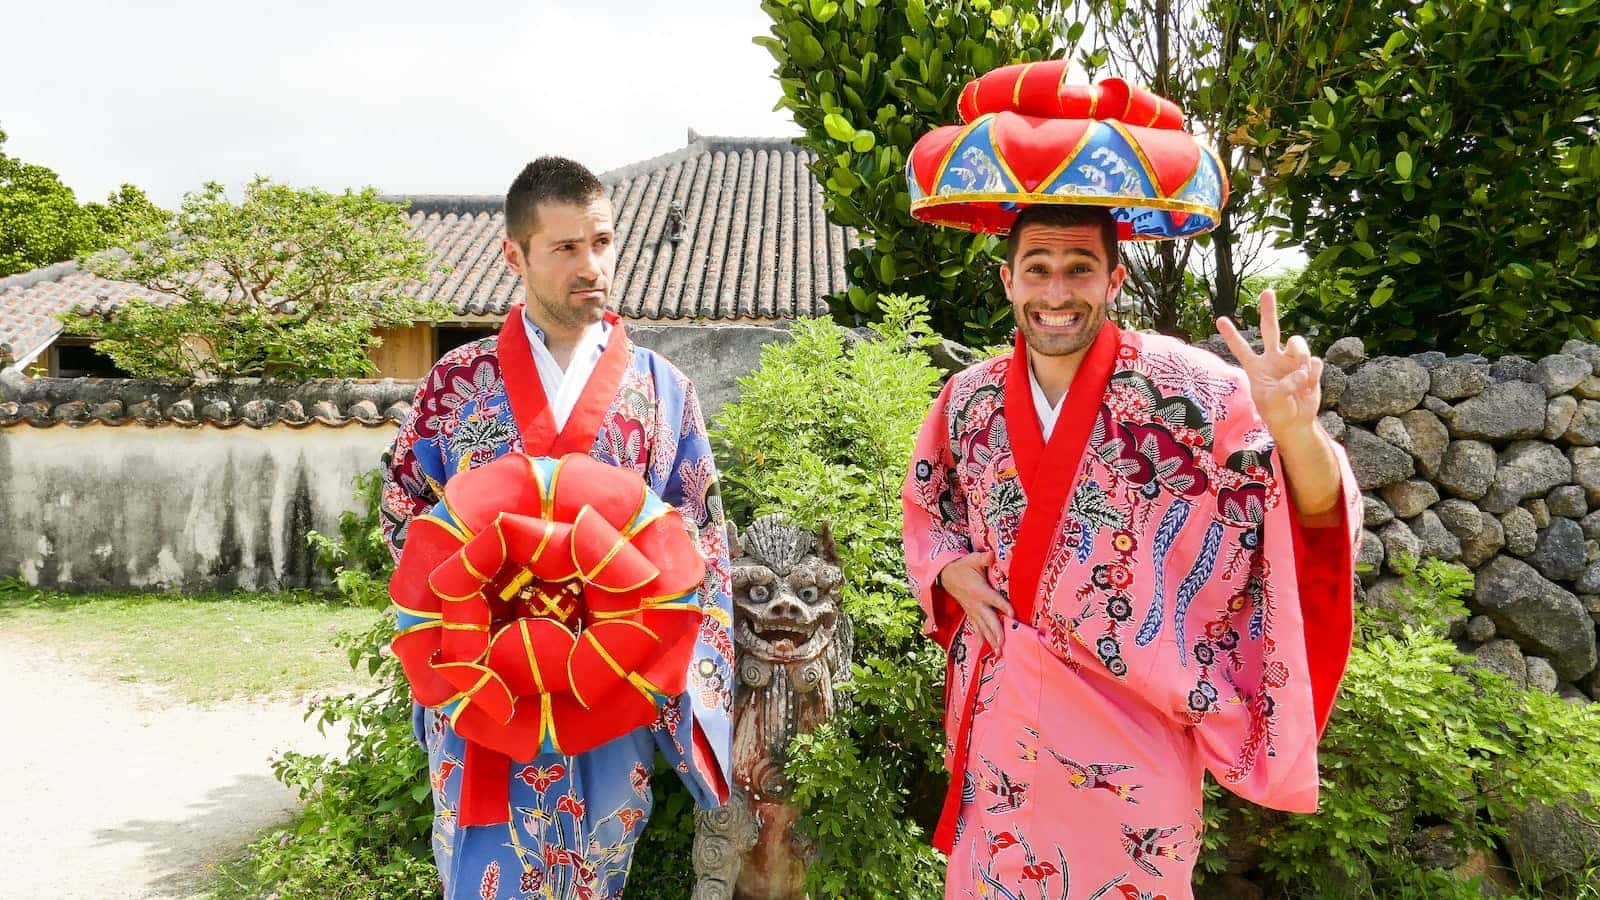 Japan one of most gay friendly countries in Asia